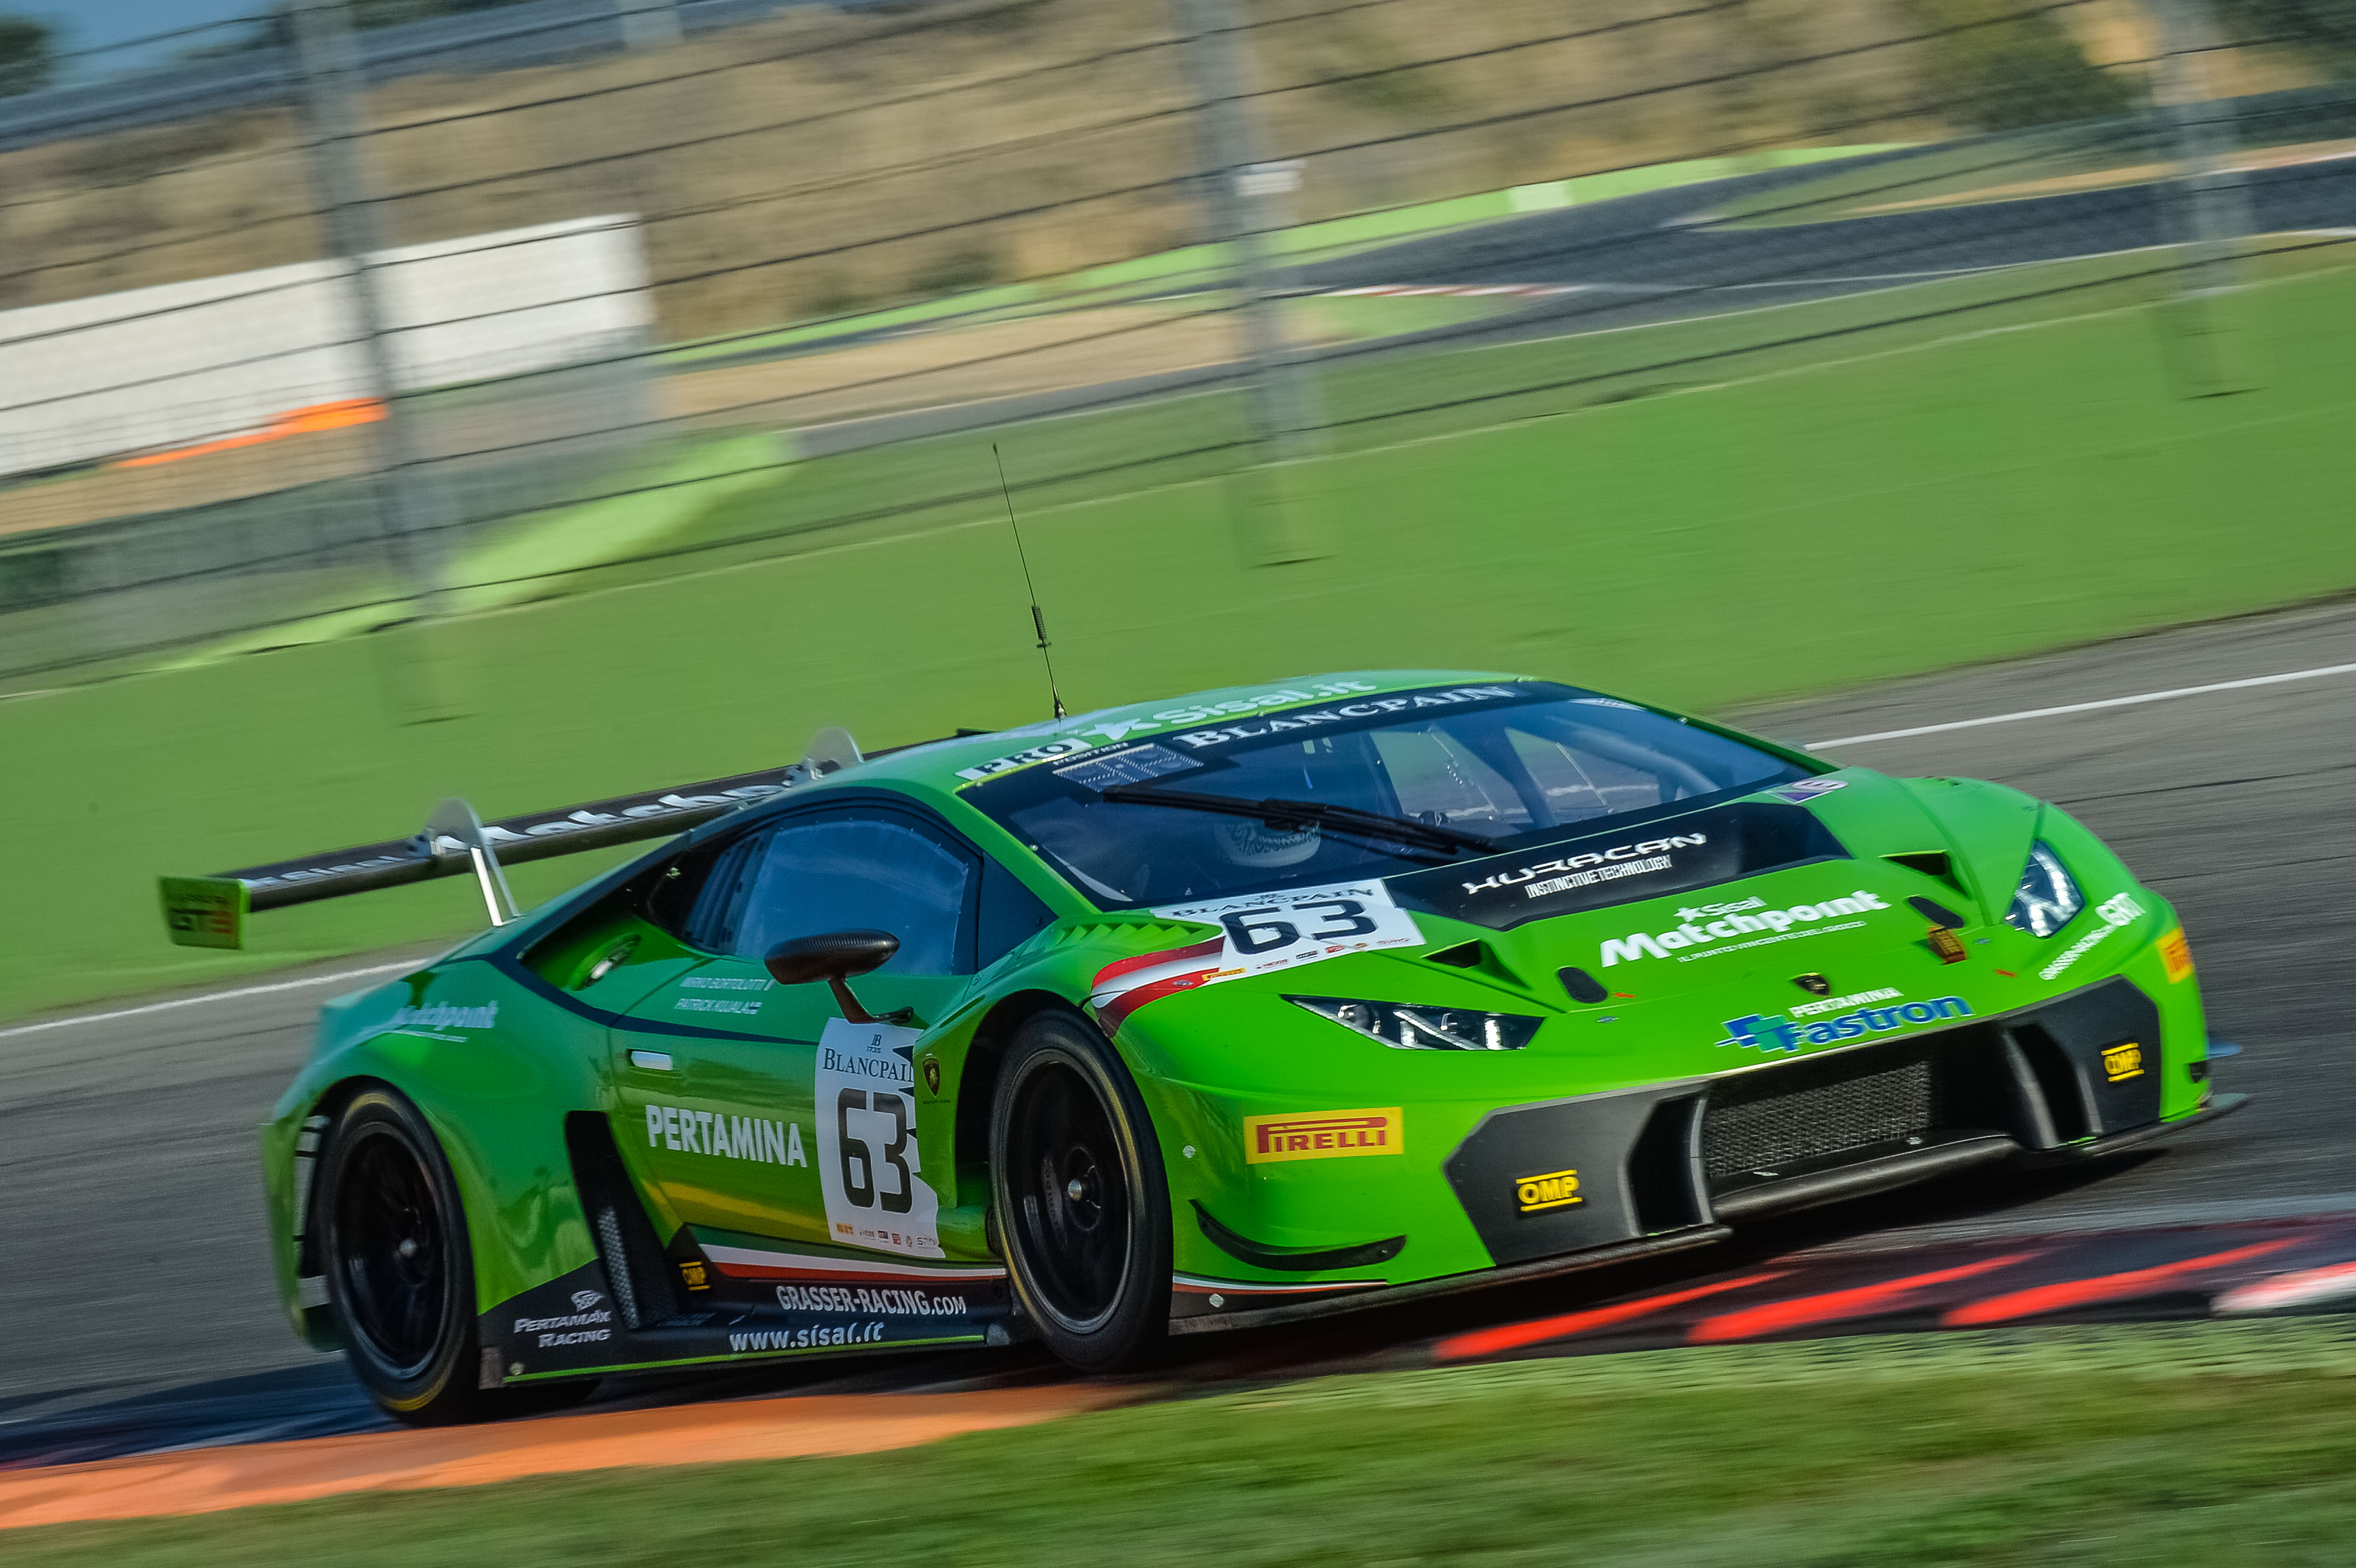 LAMBORGHINI SQUADRA CORSE CONFIRMS ANDREA AMICI AS 2016 GT3 JUNIOR DRIVER